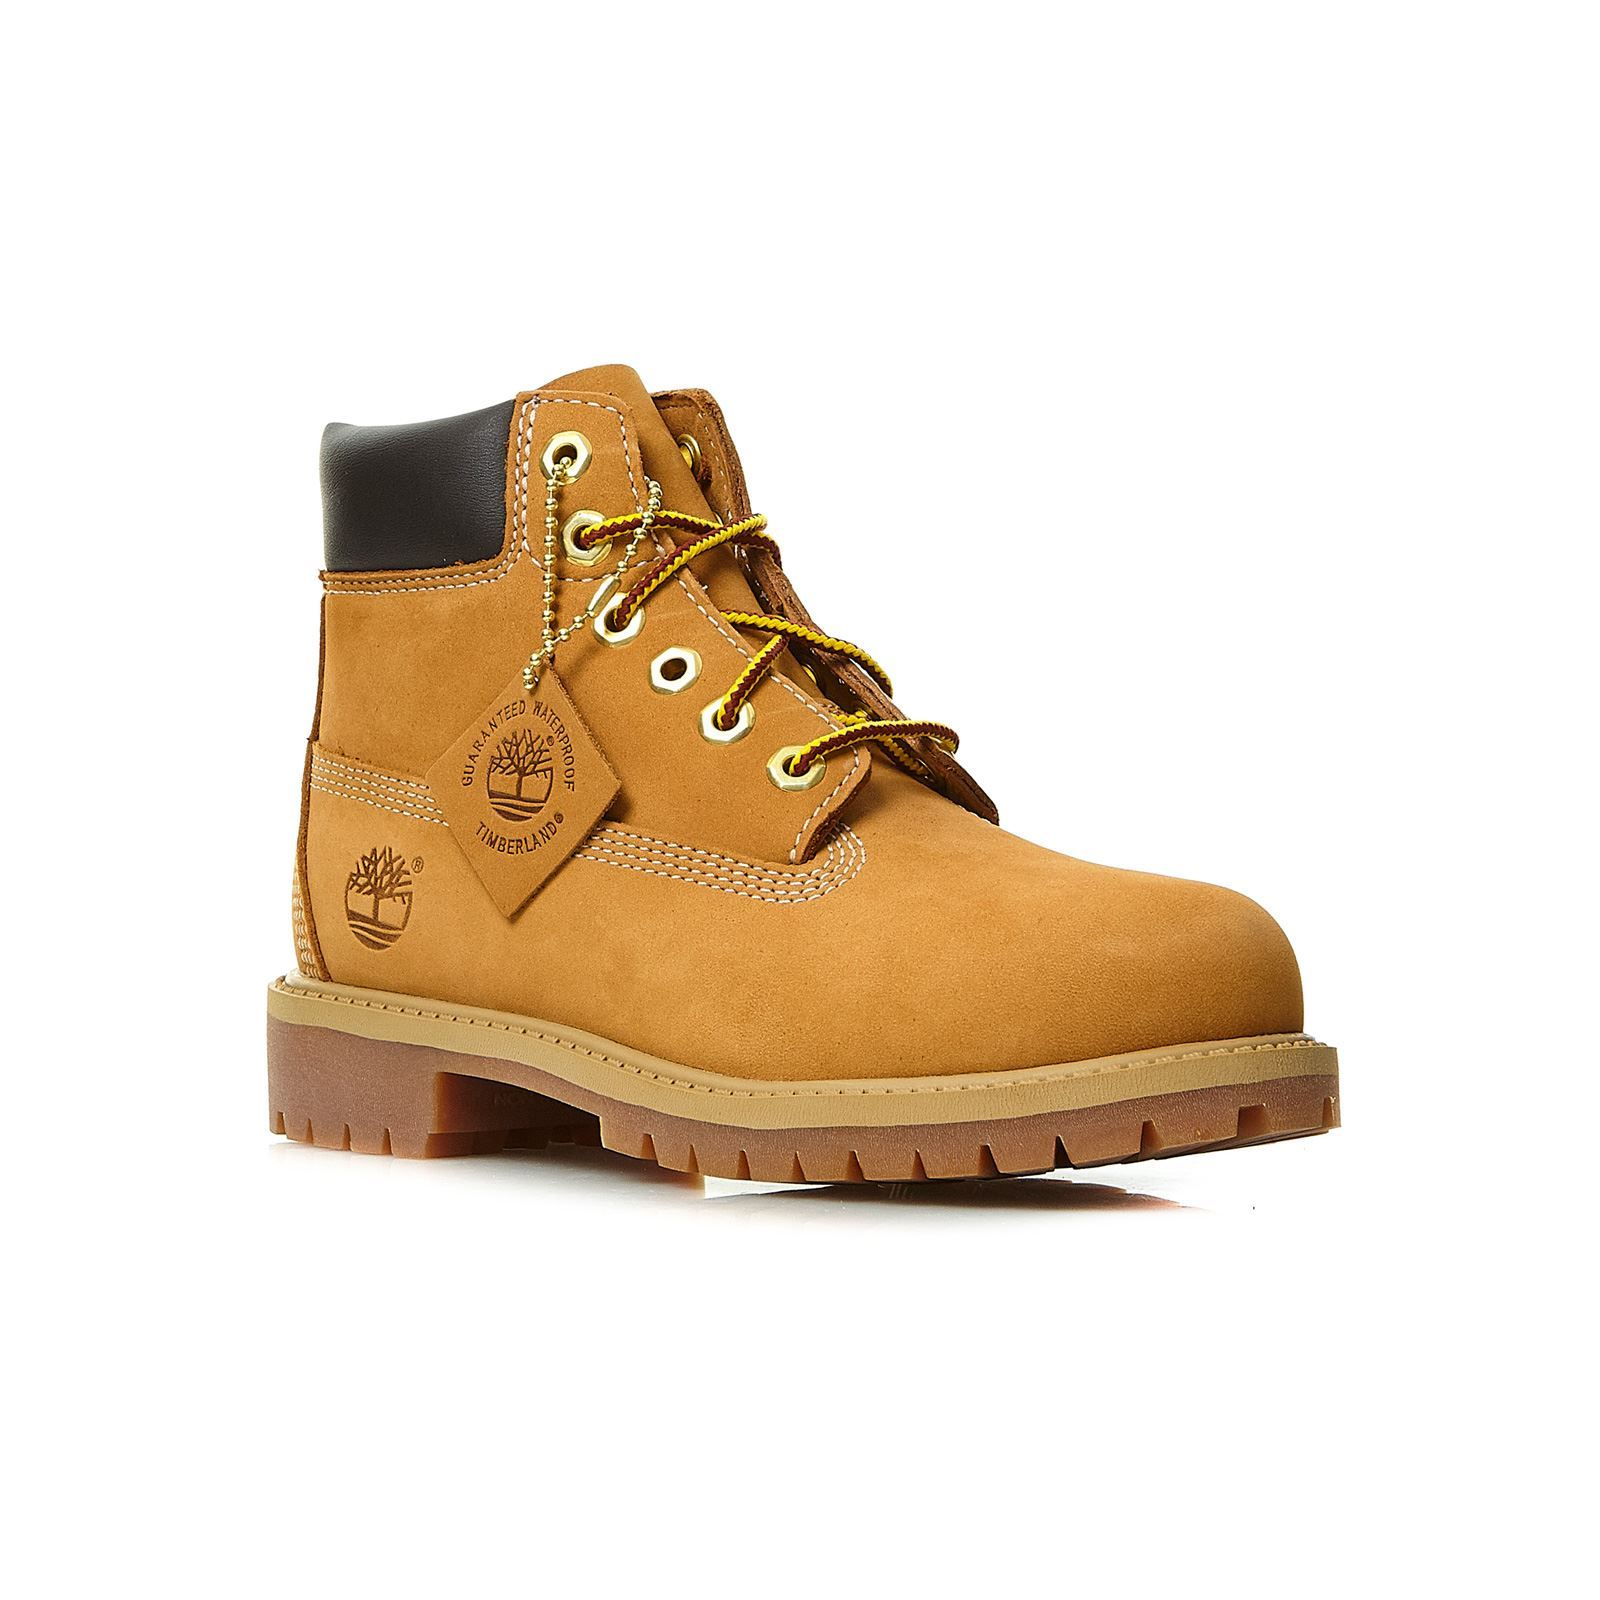 5c9d0bac3bf Timberland Icon 6-Inch Premium Boot - Boots - jaune